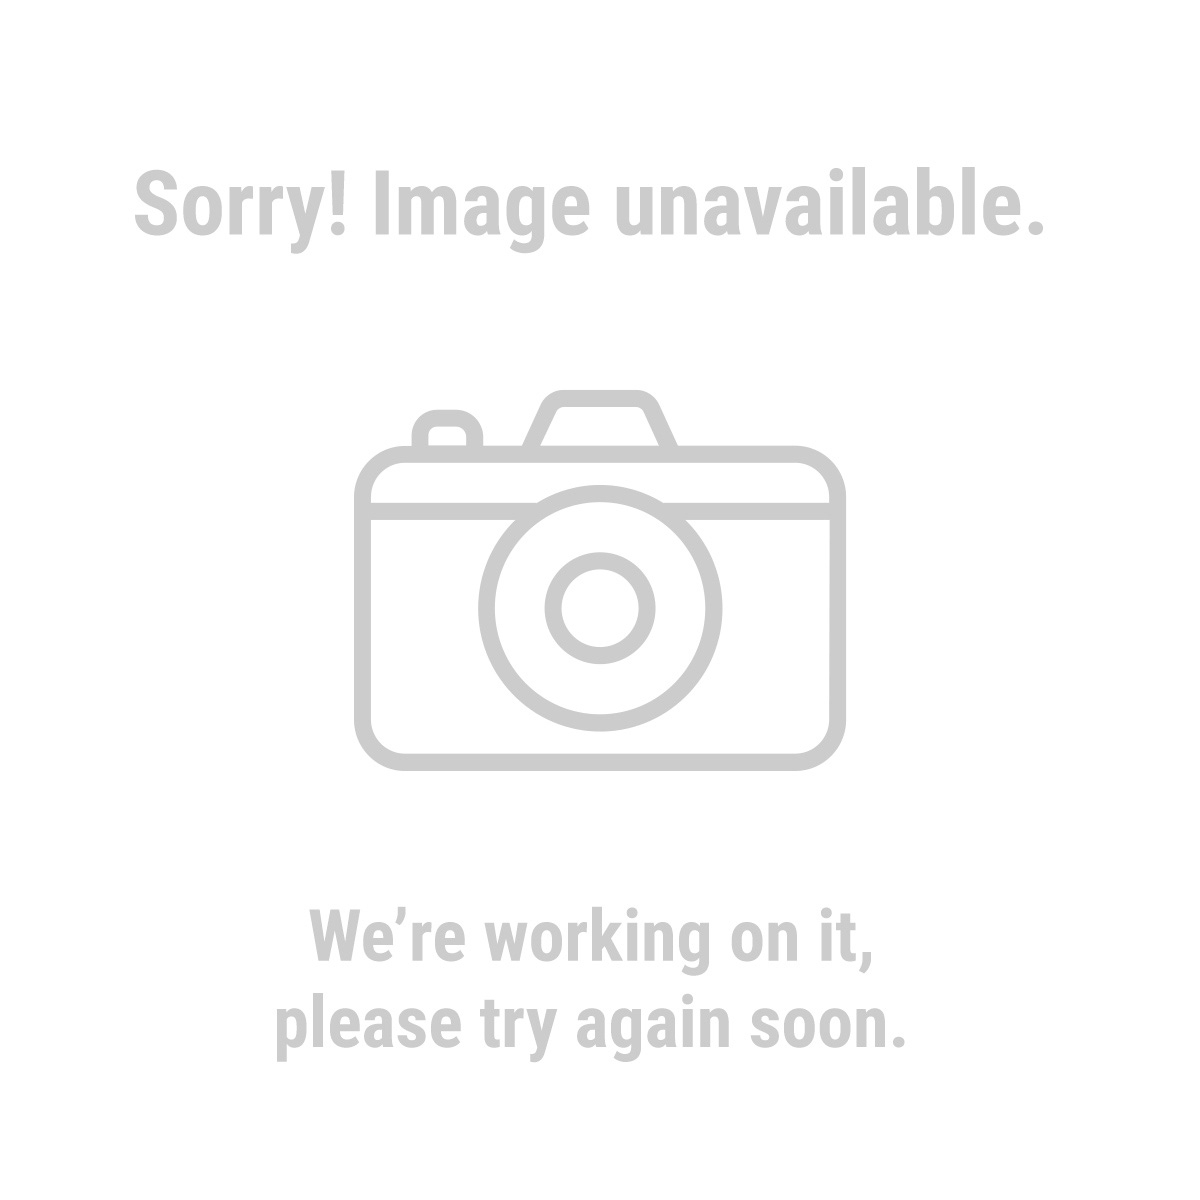 Storehouse 67667 54 Piece Washer/Seal Assortment